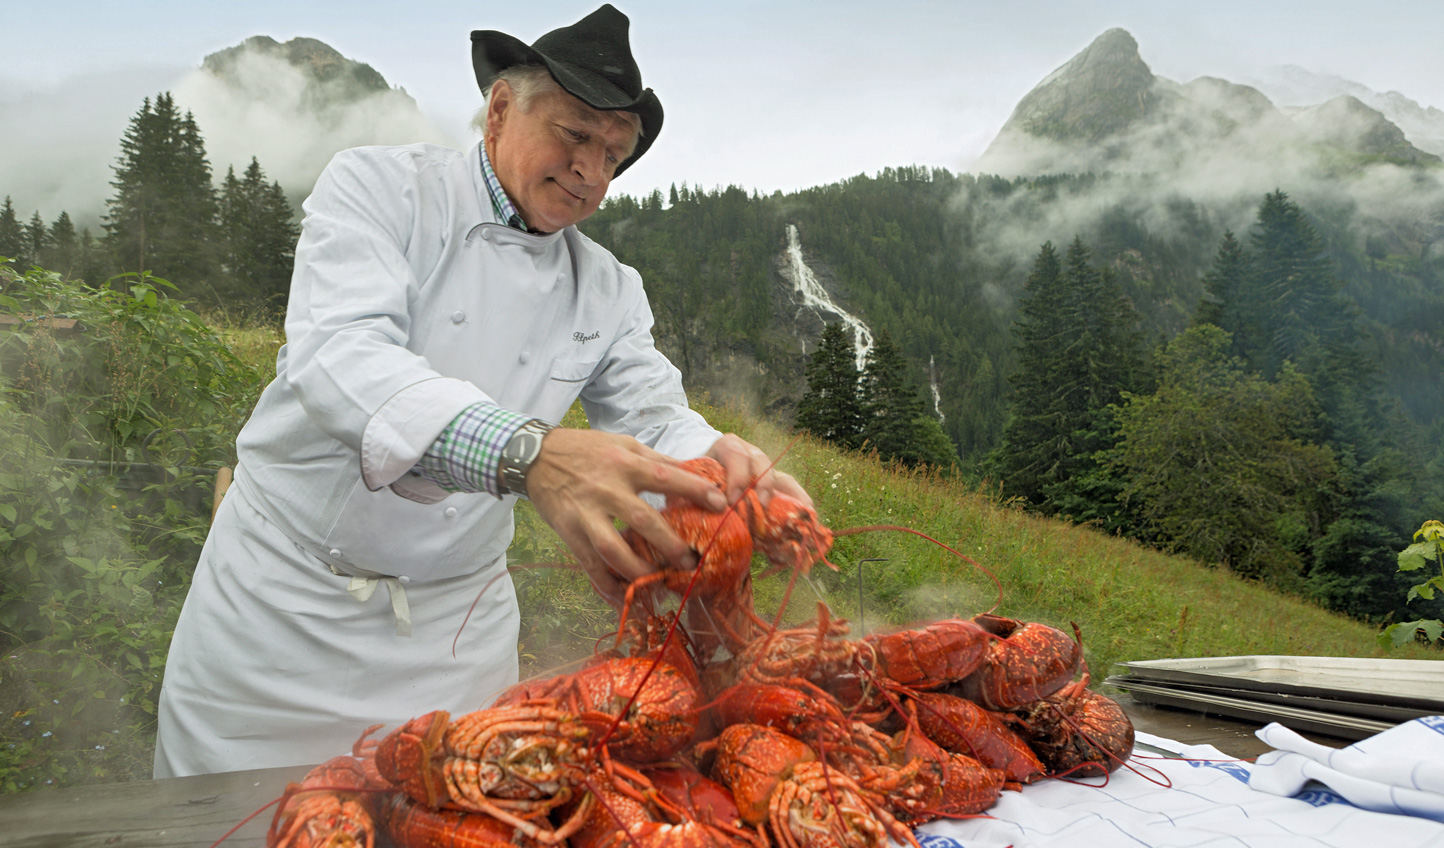 For a meal you won't soon forget, head up into the mountain for a private lobster picnic